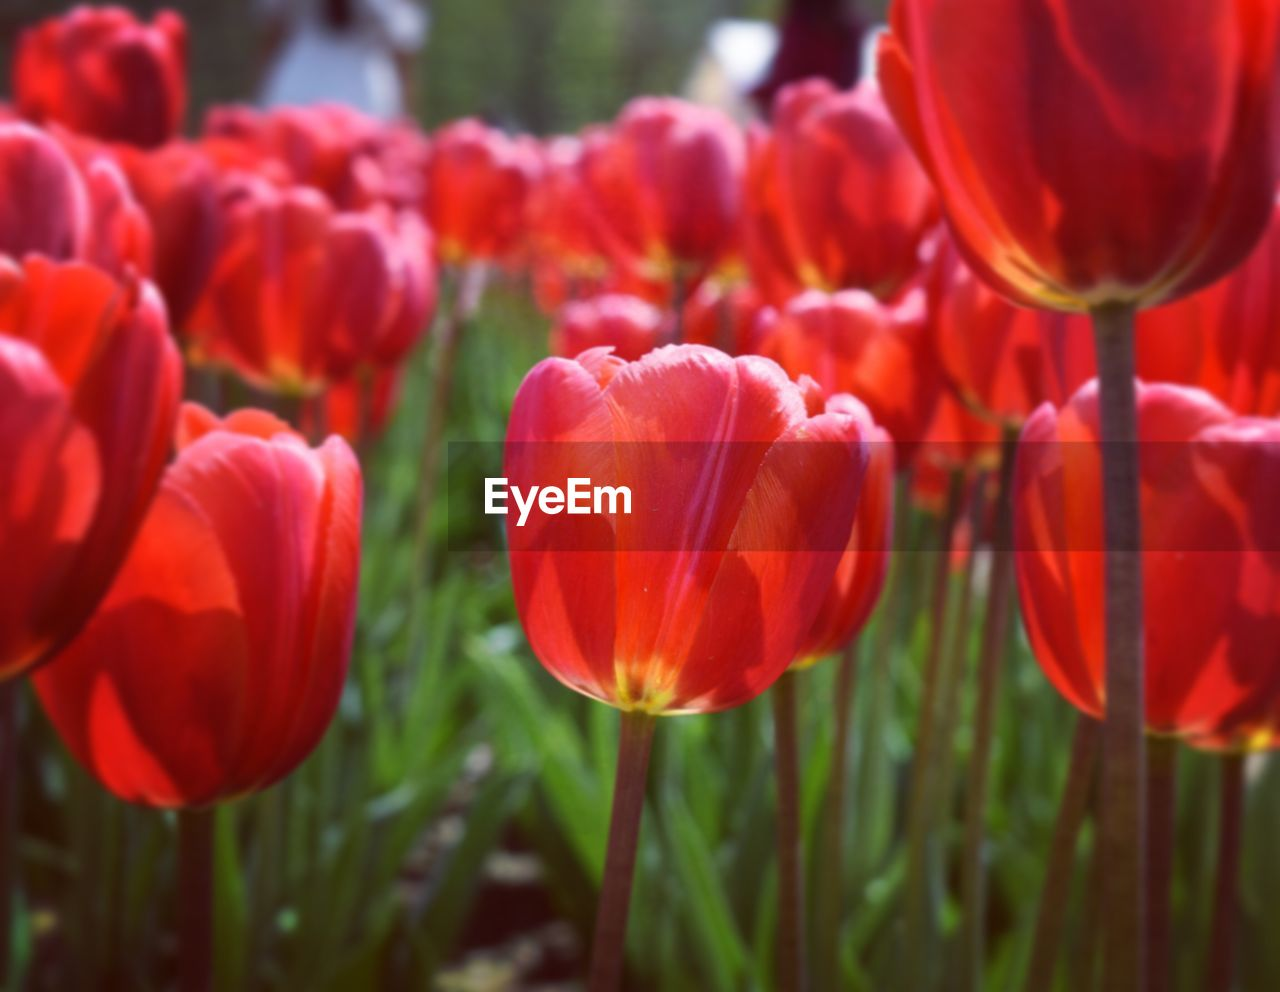 flowering plant, flower, plant, beauty in nature, vulnerability, red, fragility, freshness, growth, close-up, petal, inflorescence, flower head, tulip, field, nature, no people, day, land, selective focus